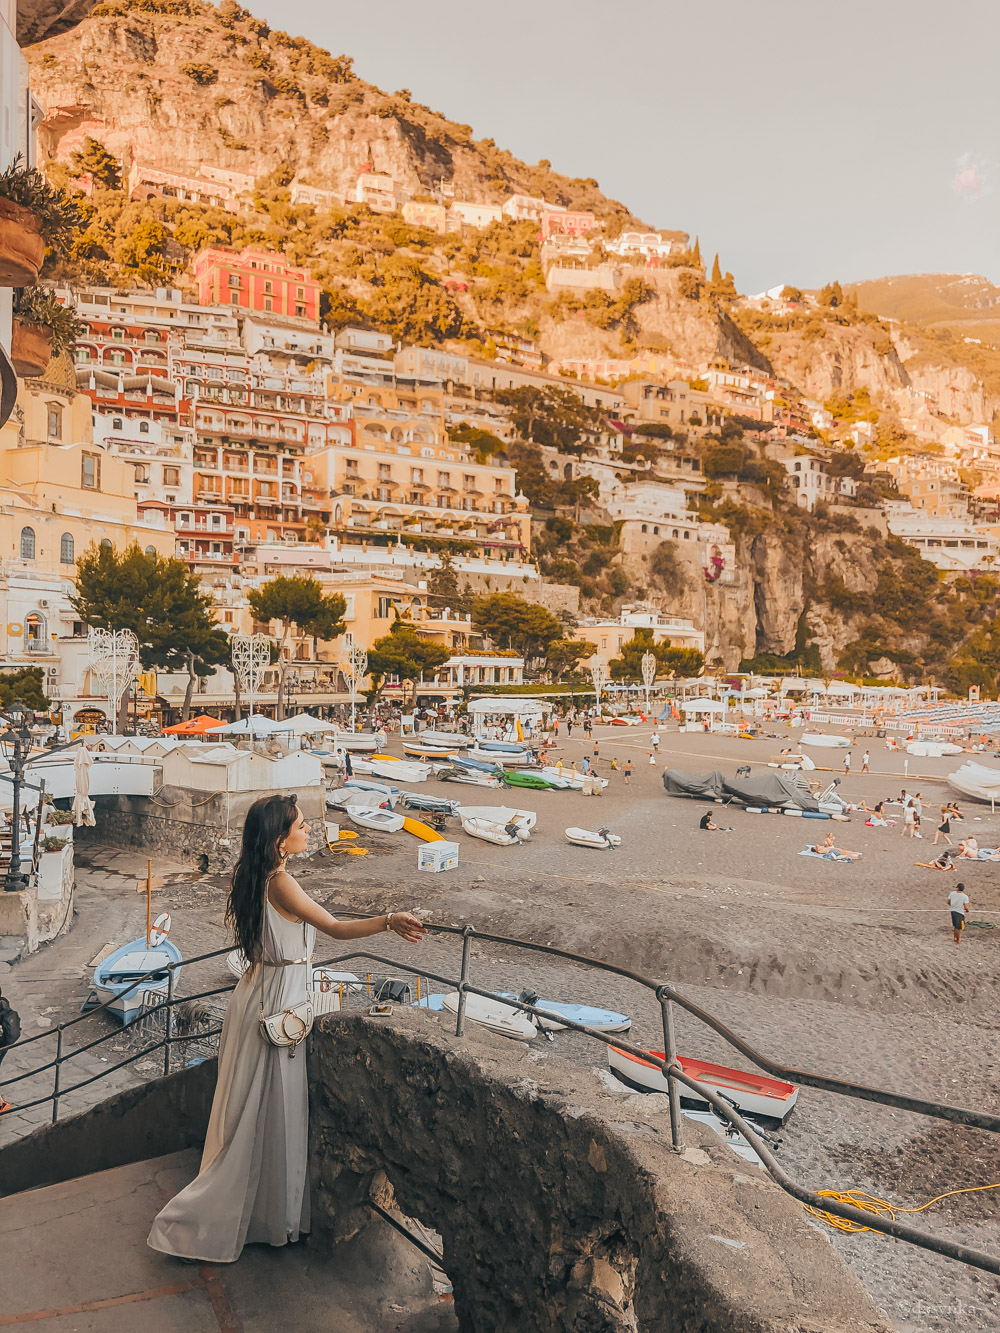 dasynka-fashion-blog-blogger-influencer-inspiration-shooting-model-globettrotter-travel-girl-lookbook-instagram-long-hair-street-style-casual-italy-lifestyle-outfit-poses-positano-amalfi-coast-blue-long-dress-colorful-beach-marina-grande-chloe-bag-sea-italy-look-ideas-elegant-italian-style-sandals-tips-atrani-habits-sorbet-lemon-covo-dei-saraceni-marina-grande-food-chez-black-sunset-boat